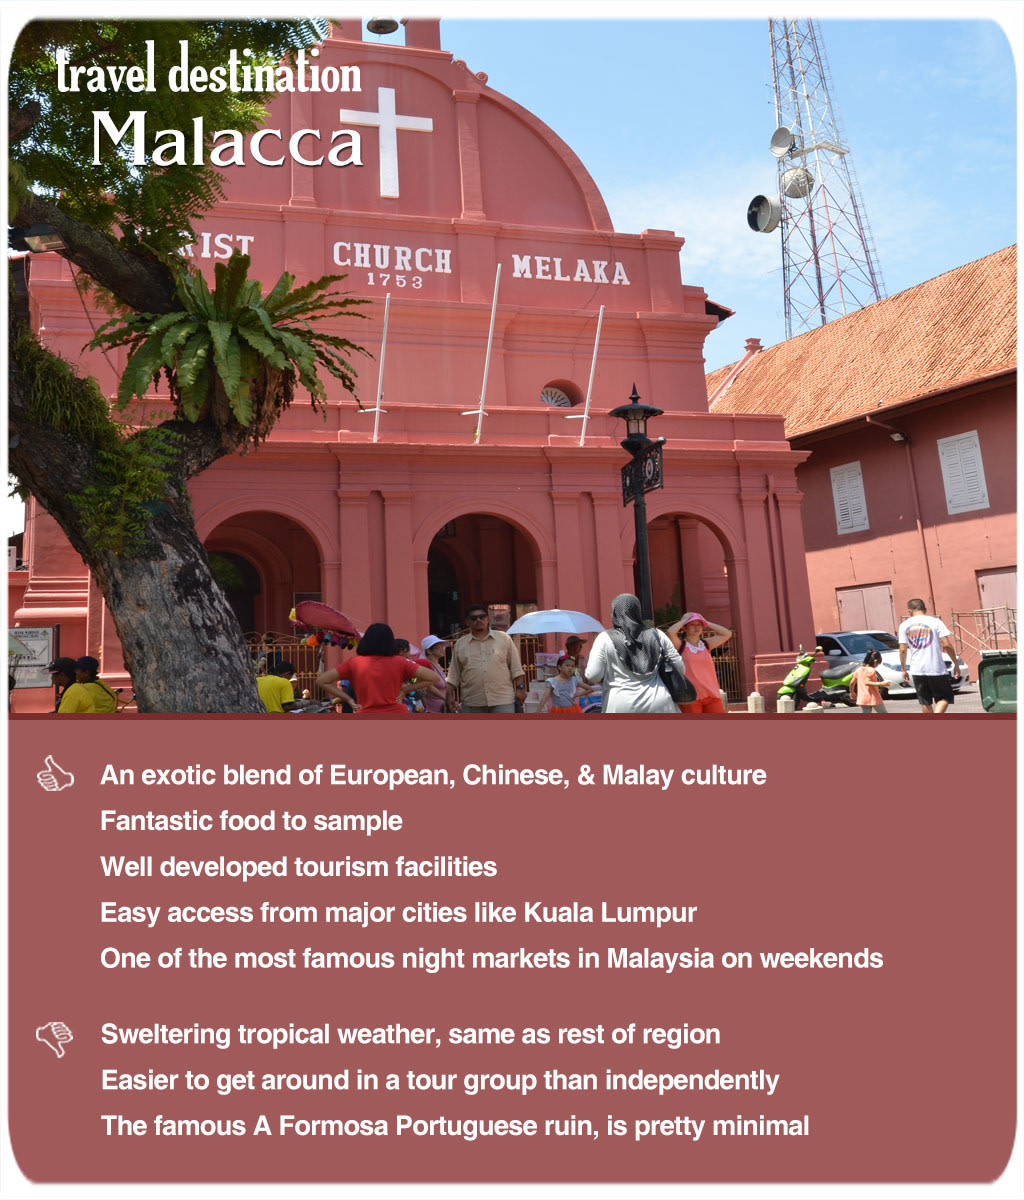 Malacca is a perfect entry point for visitors new to Malaysia. There is a bit of everything for everyone. A slice of culture each from ethnic groups.